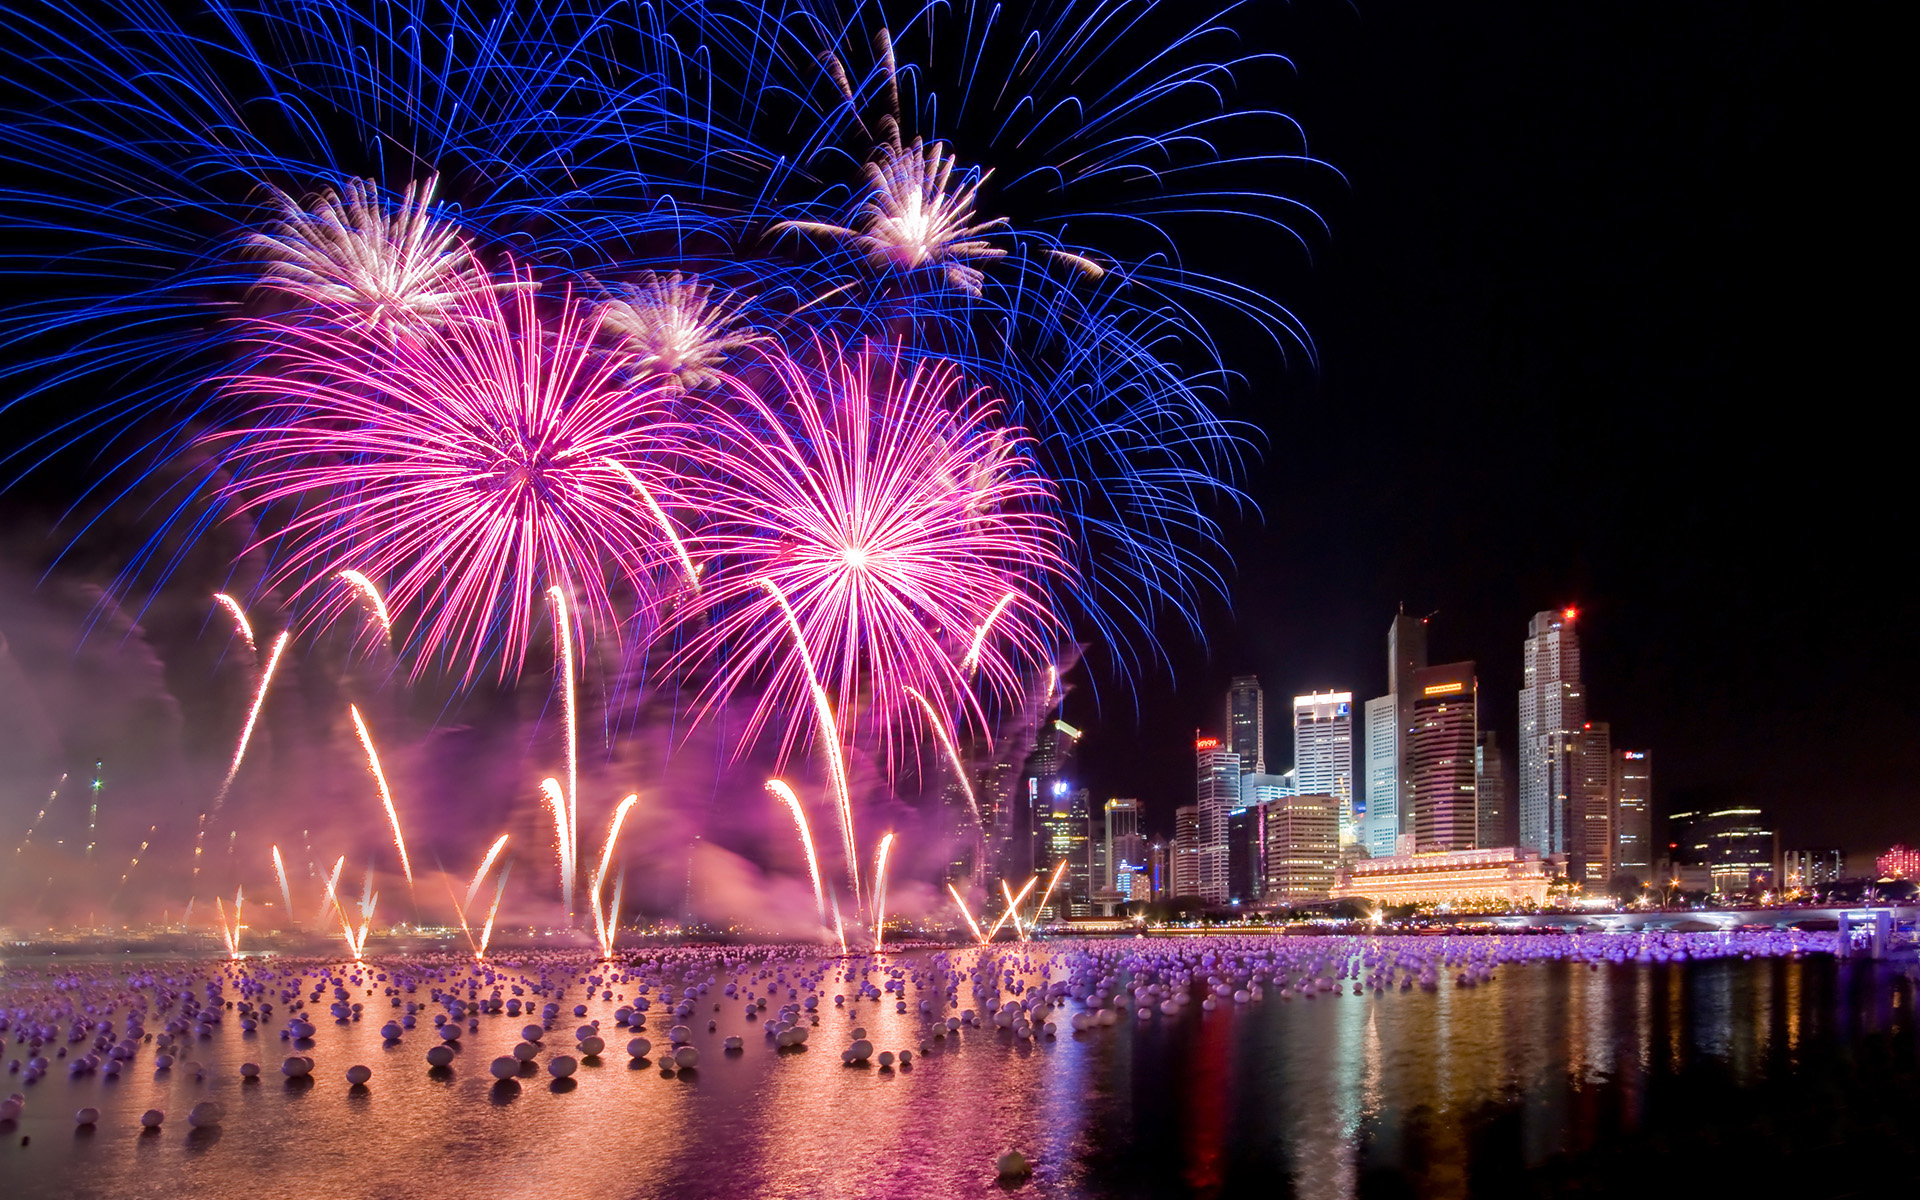 Fireworks on New Yearu0027s Eve, Singapore HD Wallpaper  Background